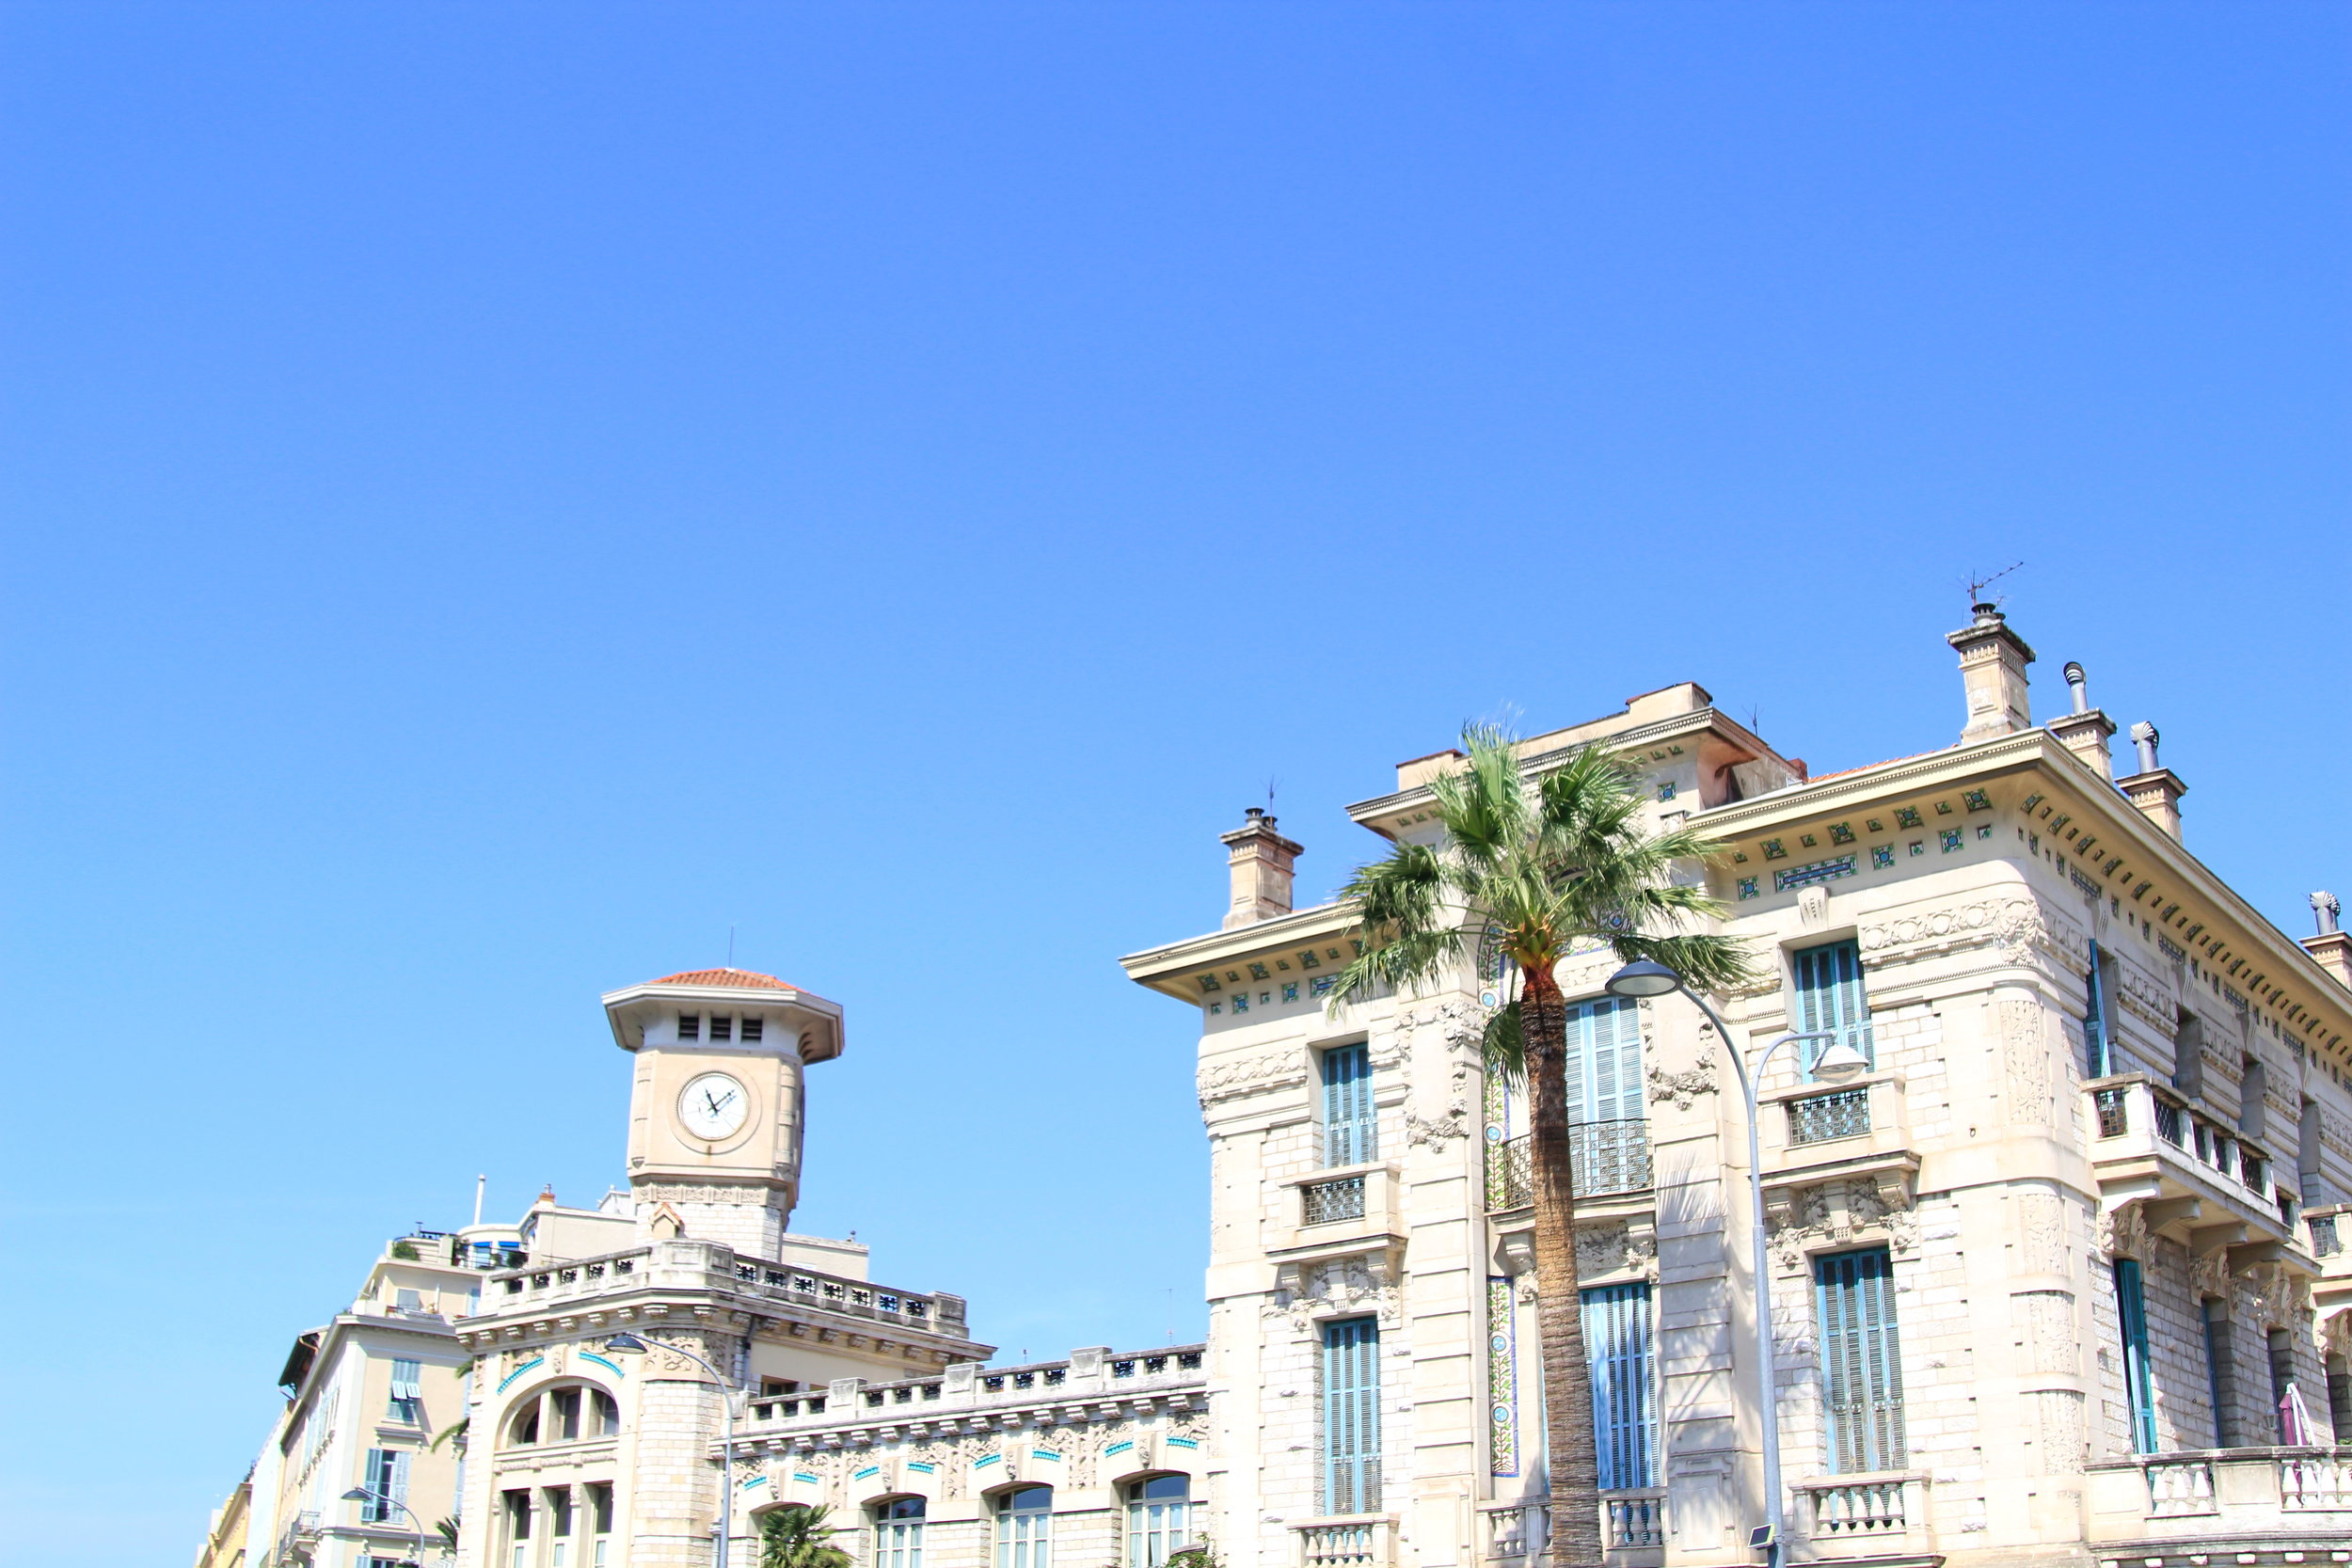 Architecture in the French Riviera